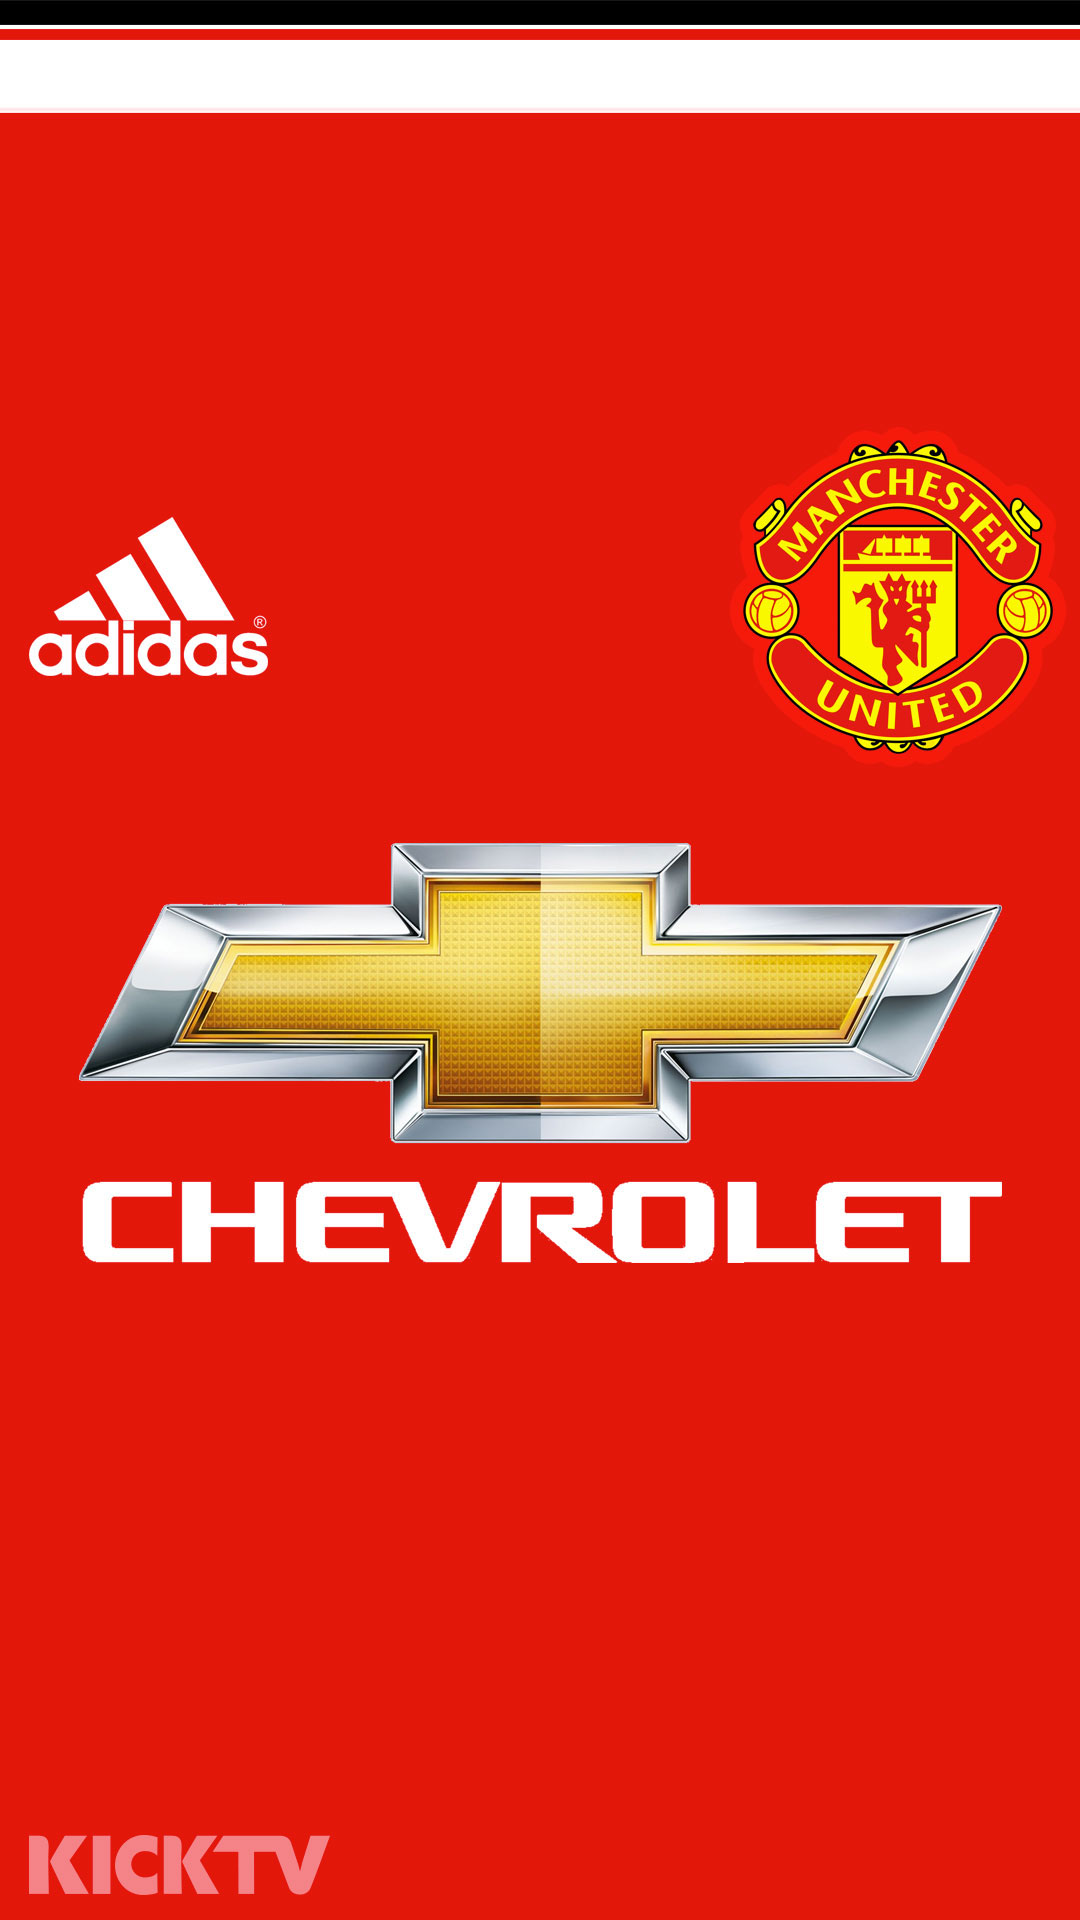 2015-16 Manchester United Jersey Wallpapers on Behance